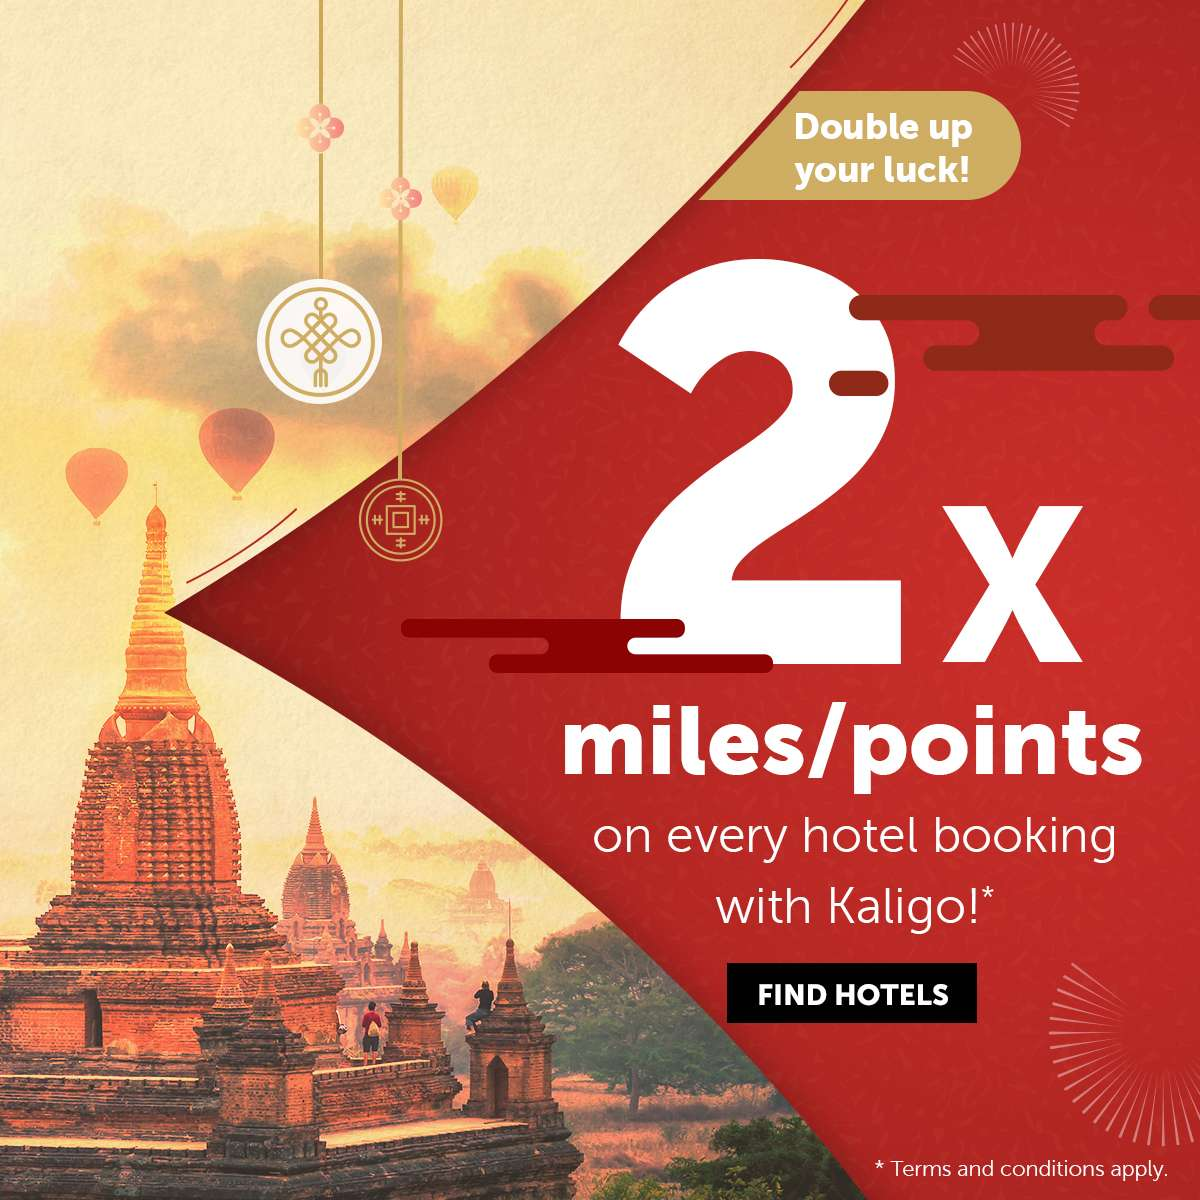 Earn double miles/points on every hotel booking with Kaligo